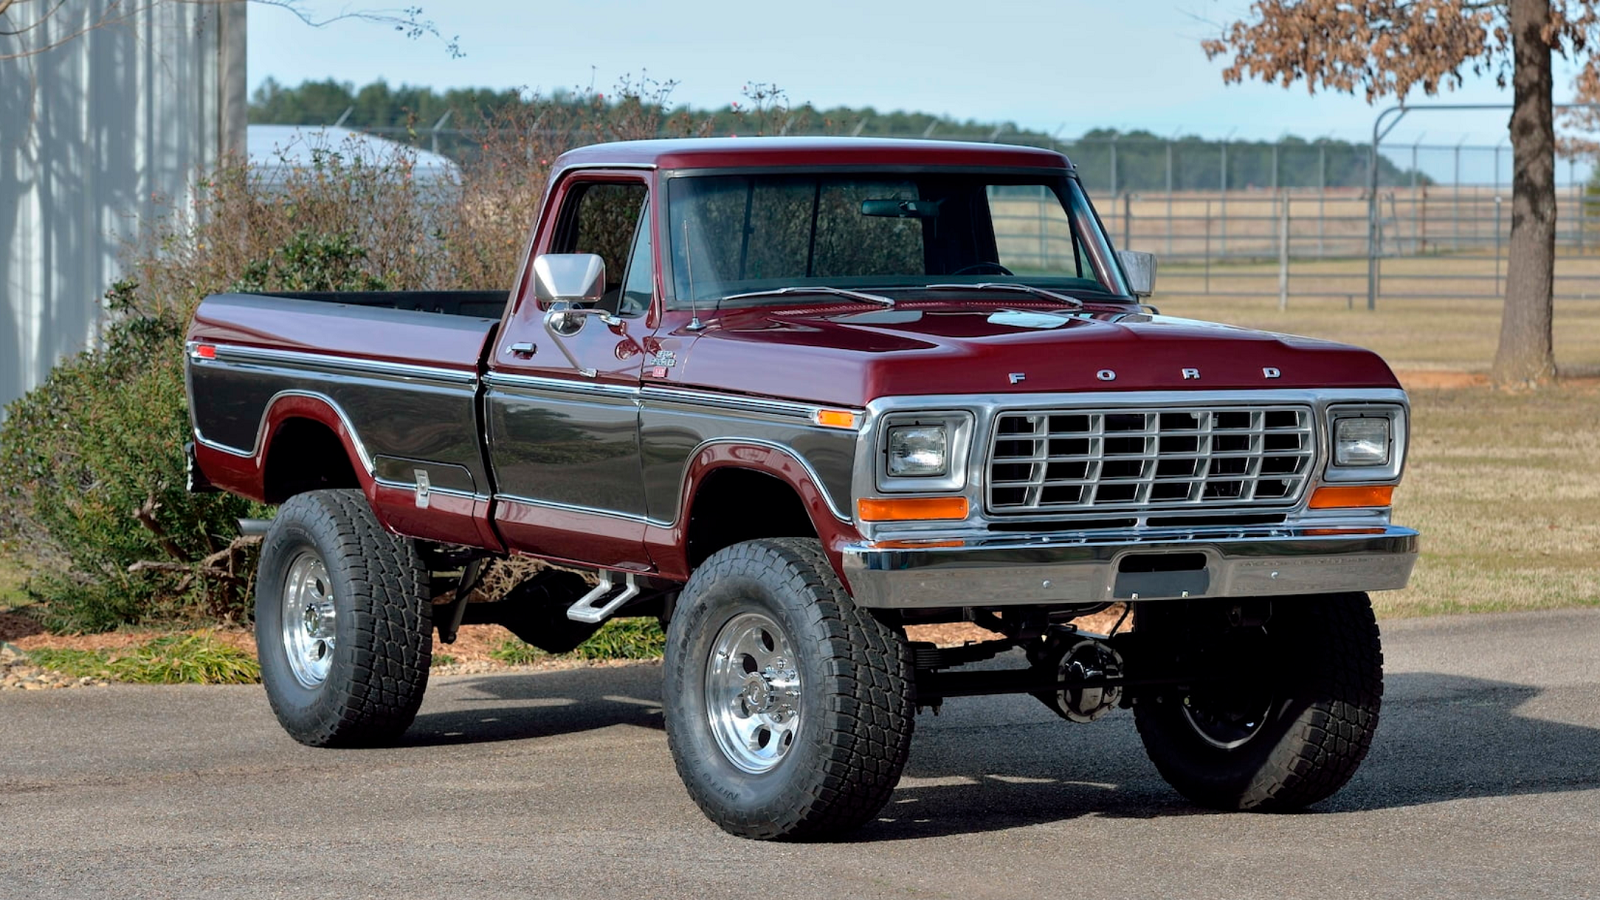 1978 Ford F-250 is Picture Perfect with 6-Inch Lift